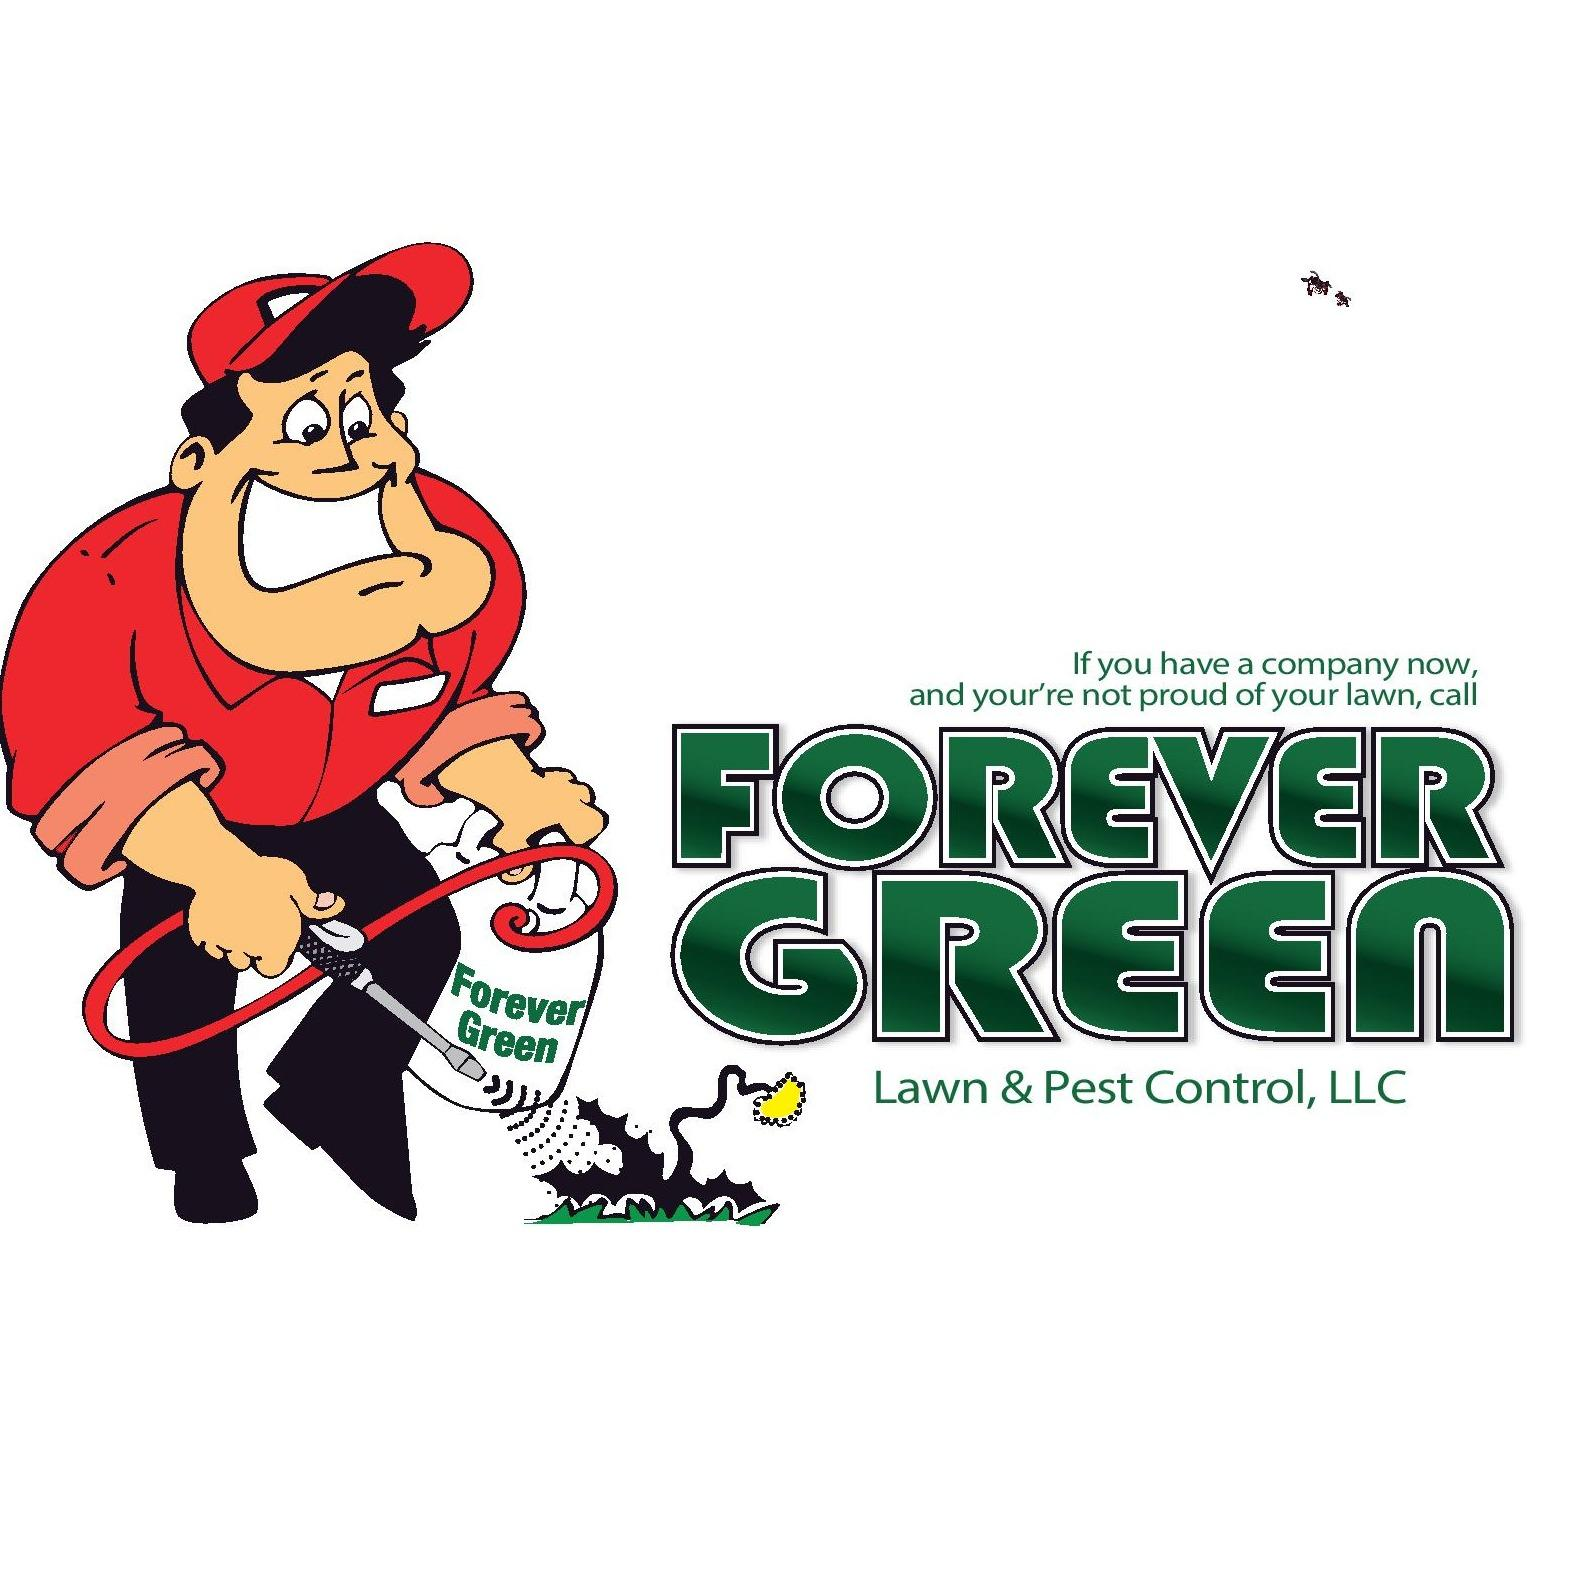 FOREVER GREEN lawn and pest control